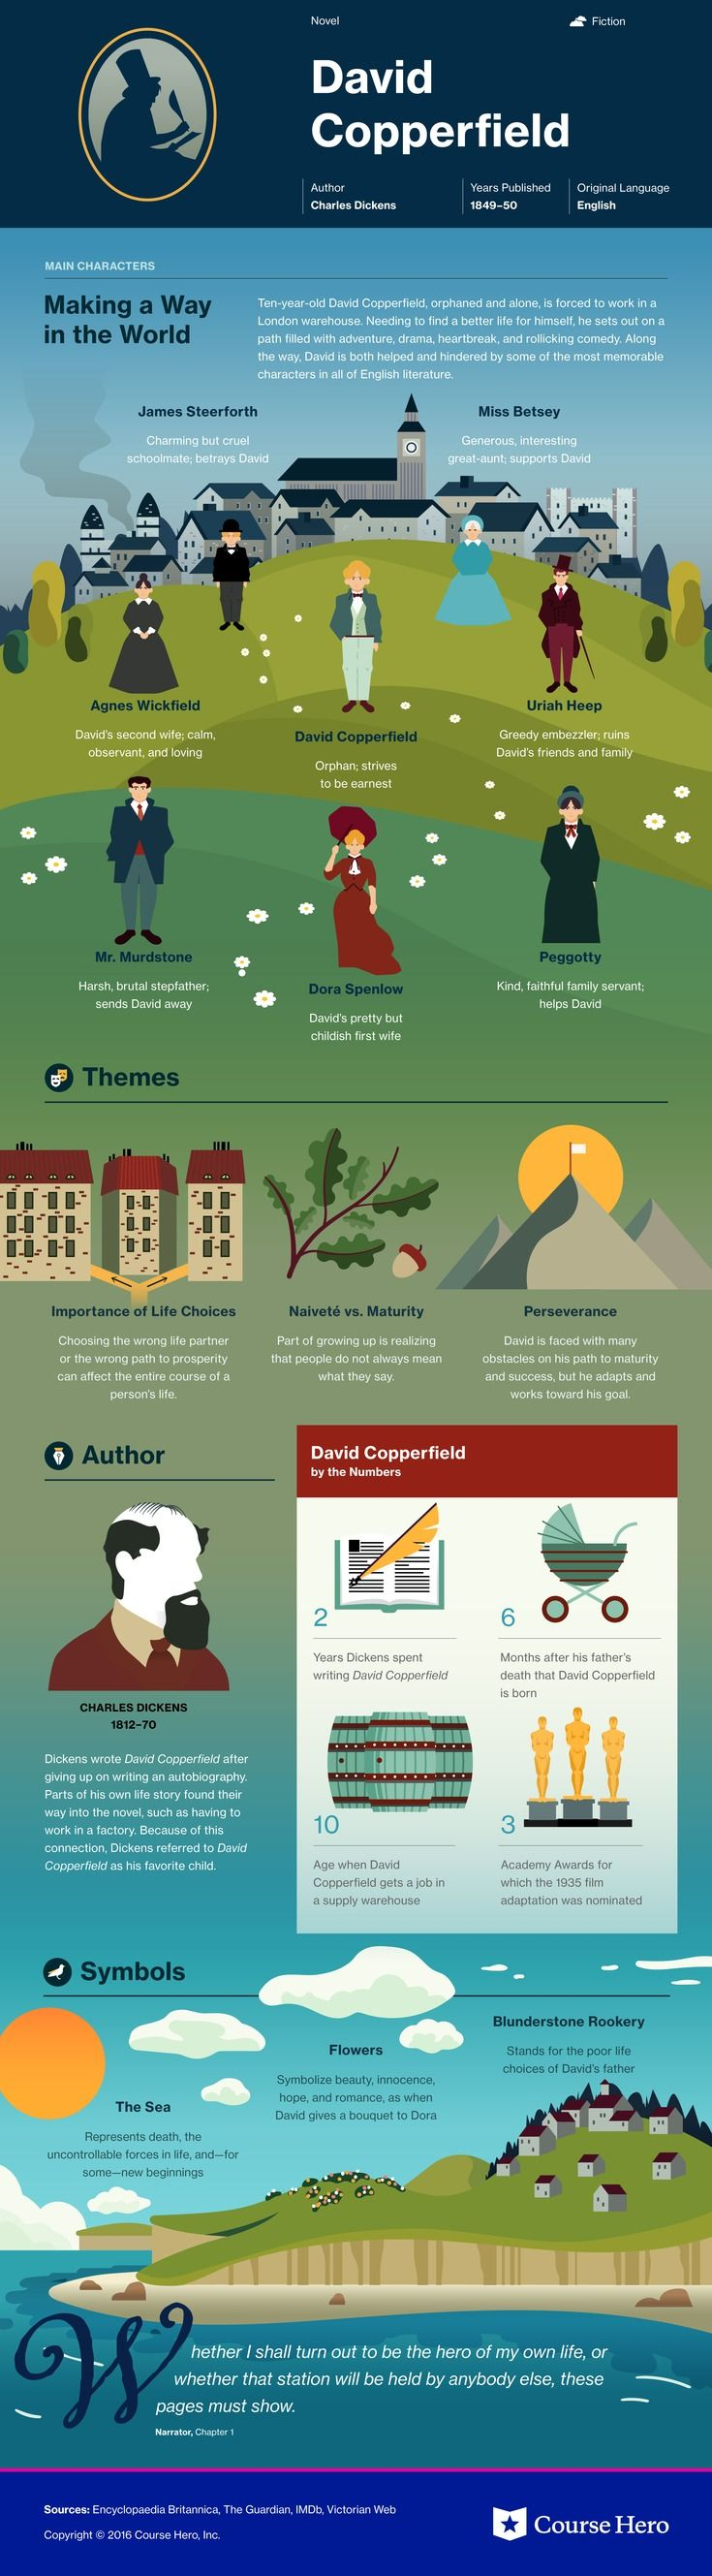 david copperfield infographic course hero literature symbolism in charles dickens s david copperfield learn about the different symbols such as blunderstone rookery in david copperfield and how they